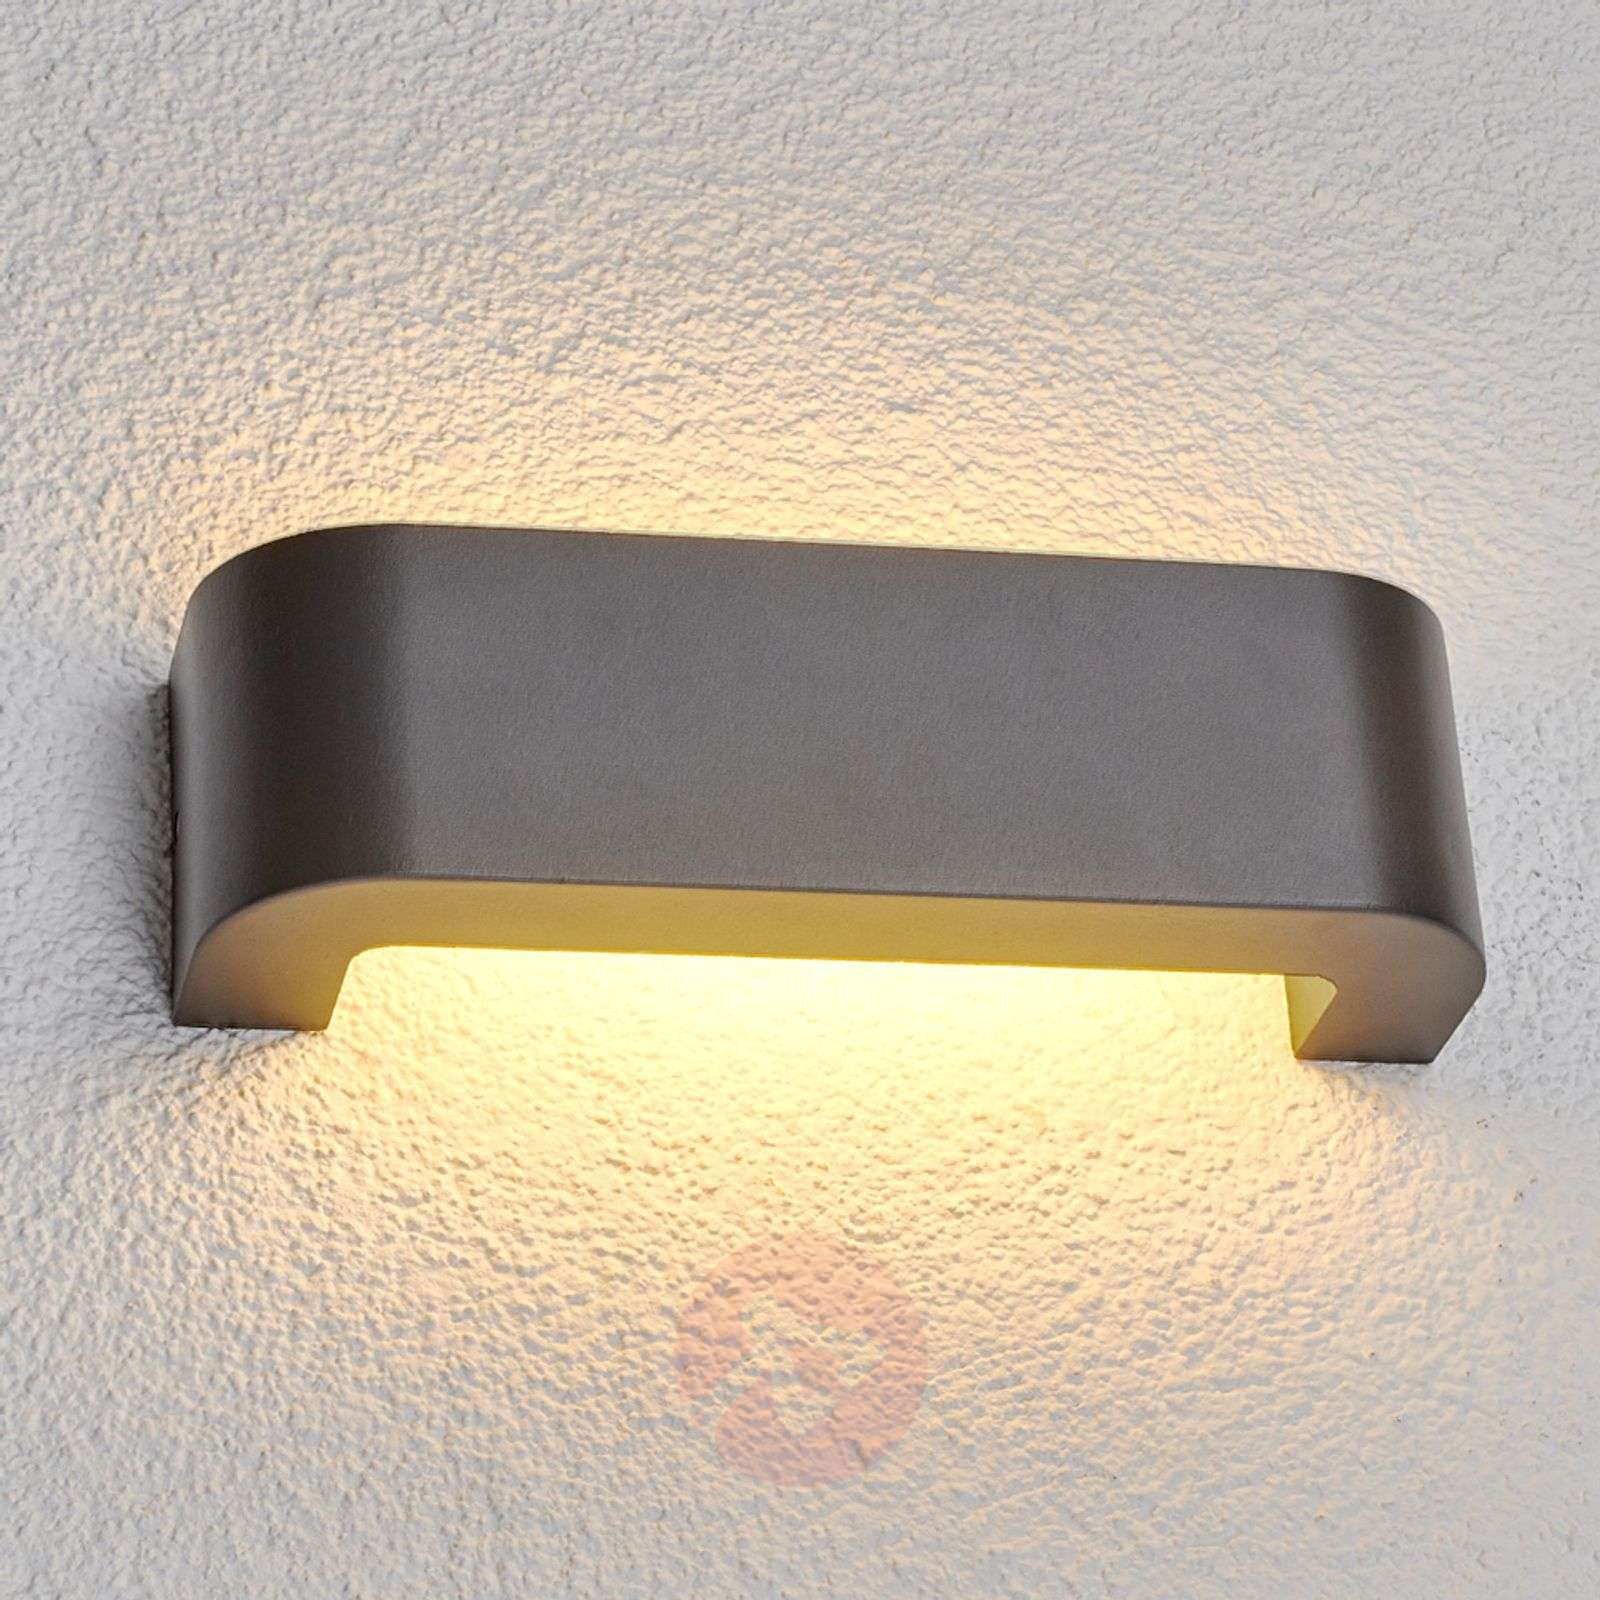 Eberta LED outdoor wall light in graphite grey-9647008-01